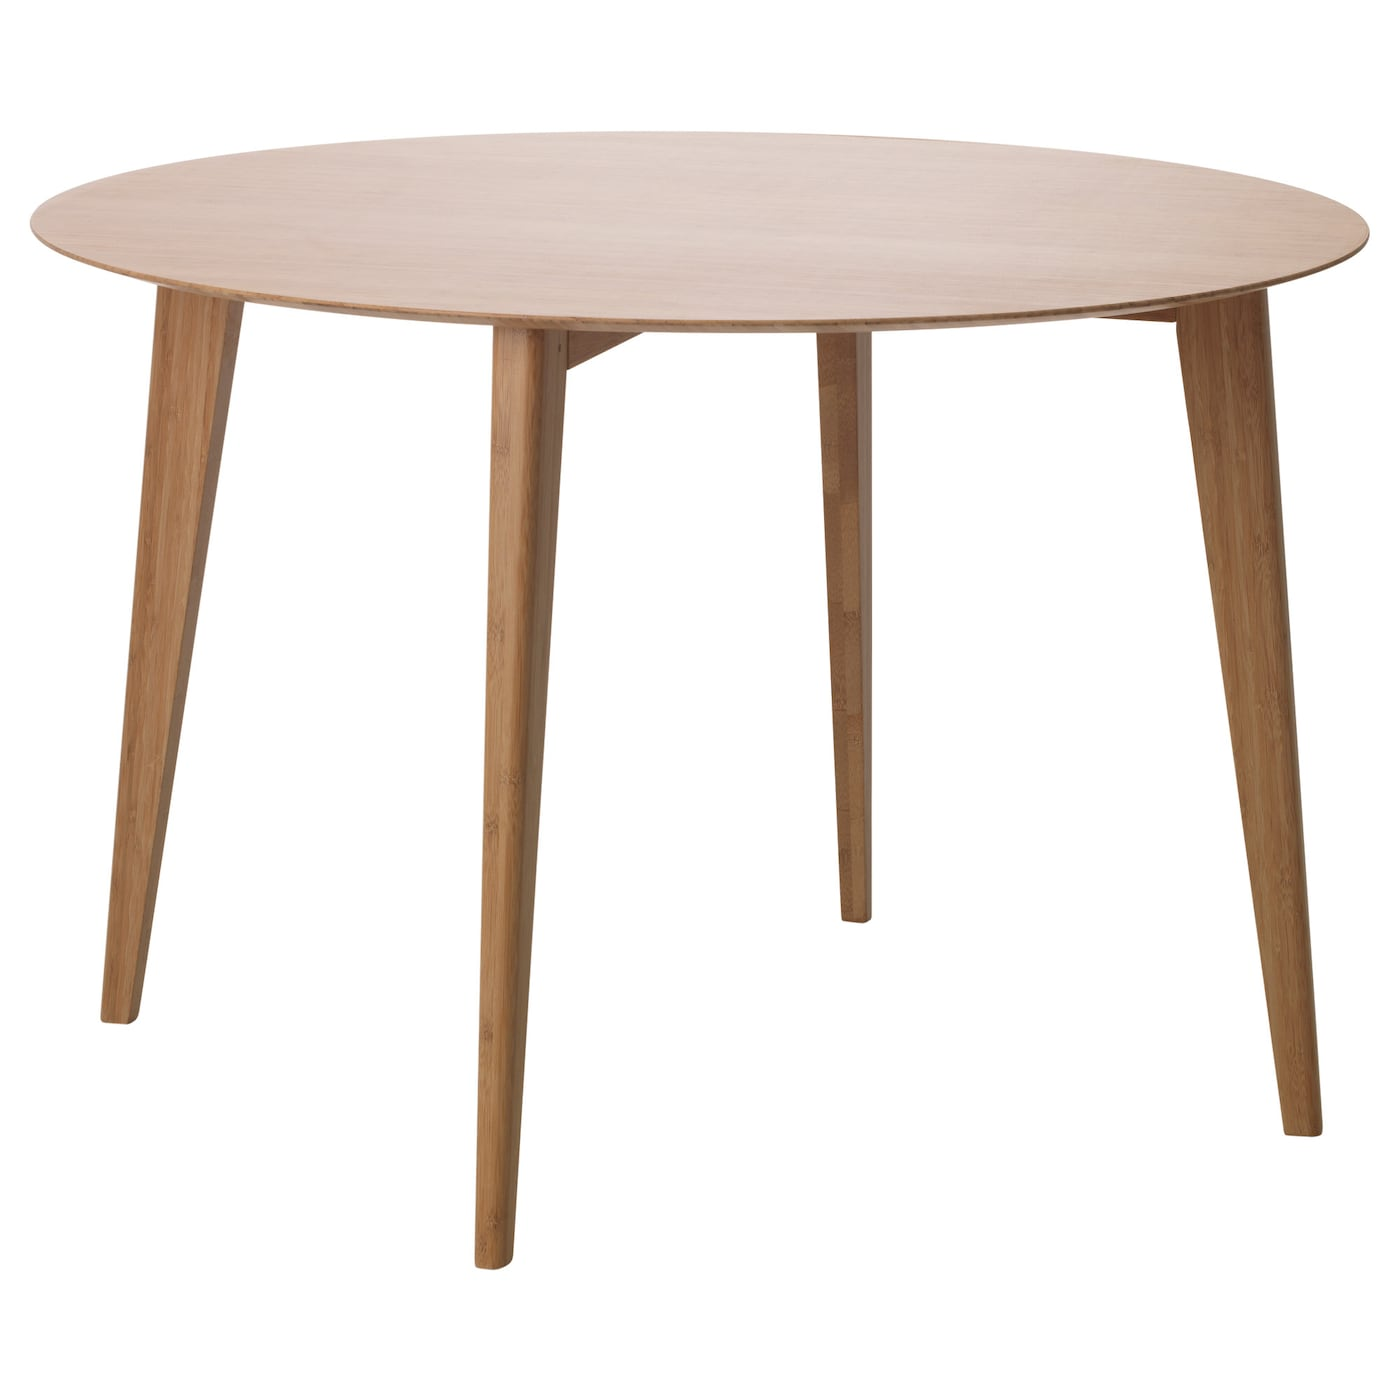 Ikea table salle a manger cool malm occasional table ikea for Table a manger ikea